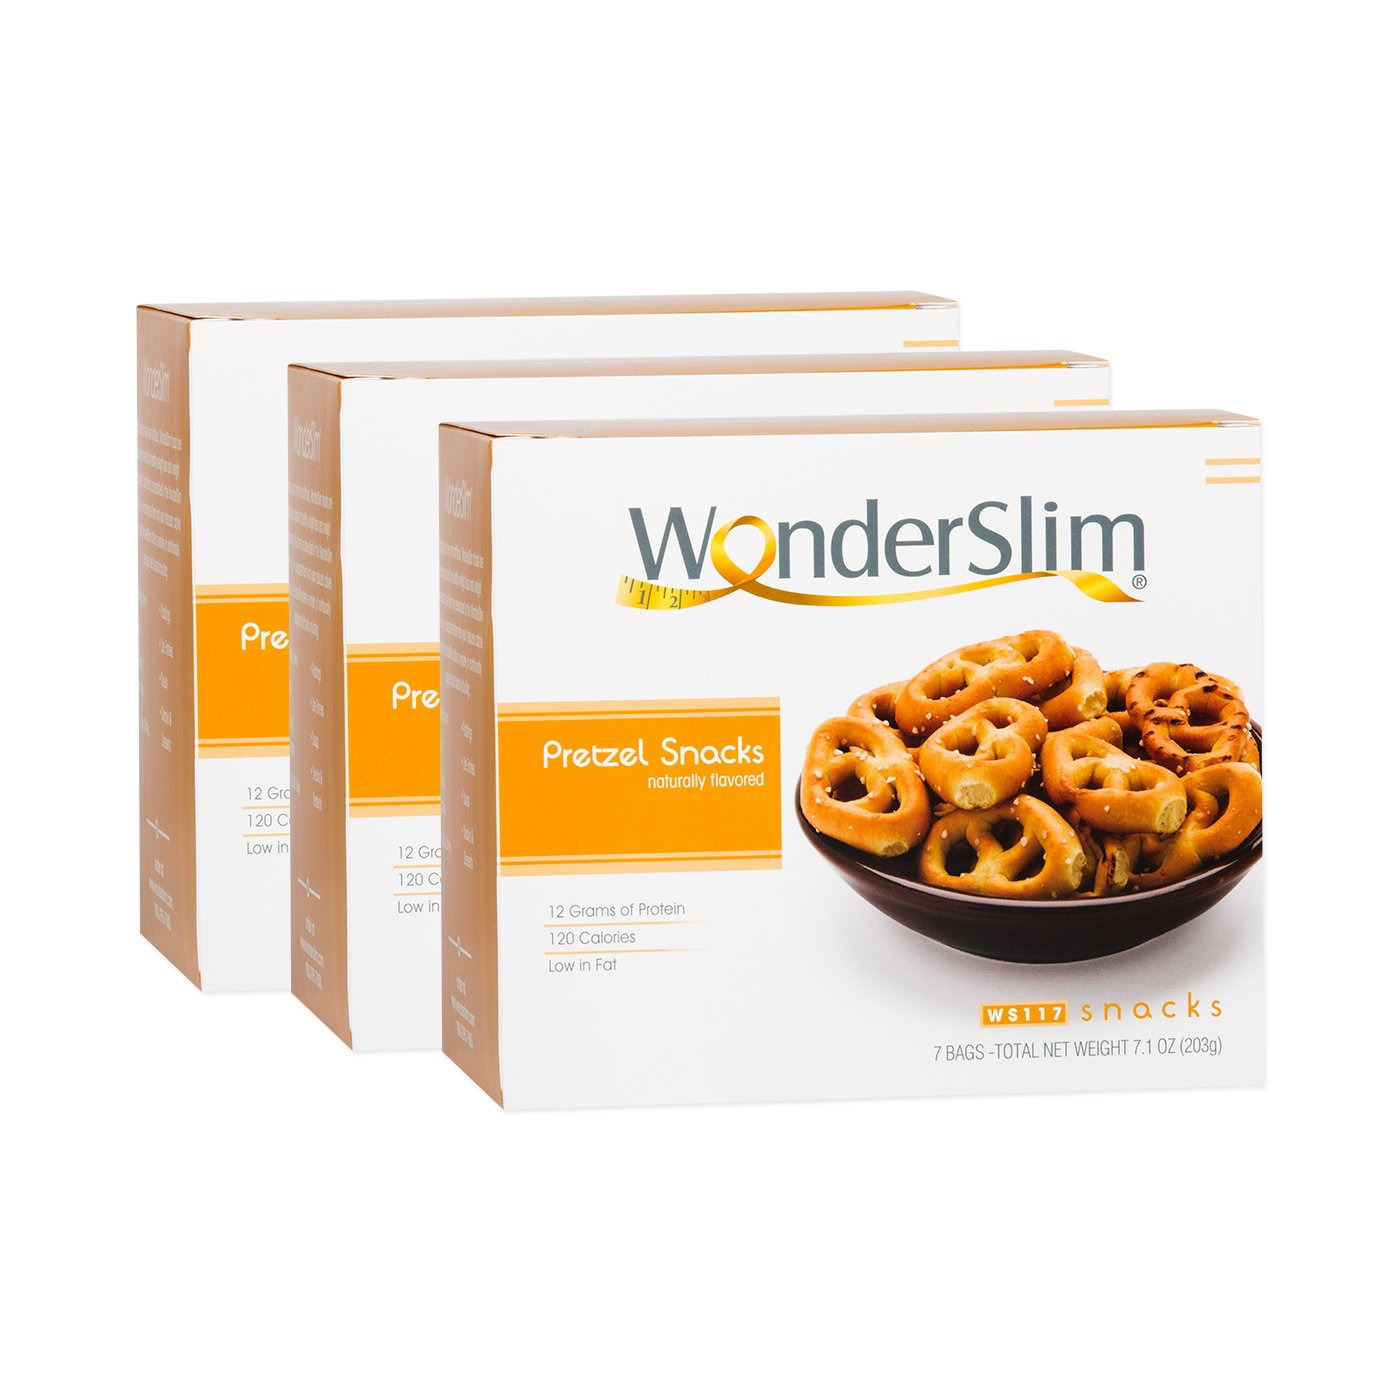 WonderSlim High Protein Pretzel Snacks - Low-Carb Diet Healthy 12g Protein Snack For Weight Loss - 3 Box Value Pack (Save 5%) by WonderSlim